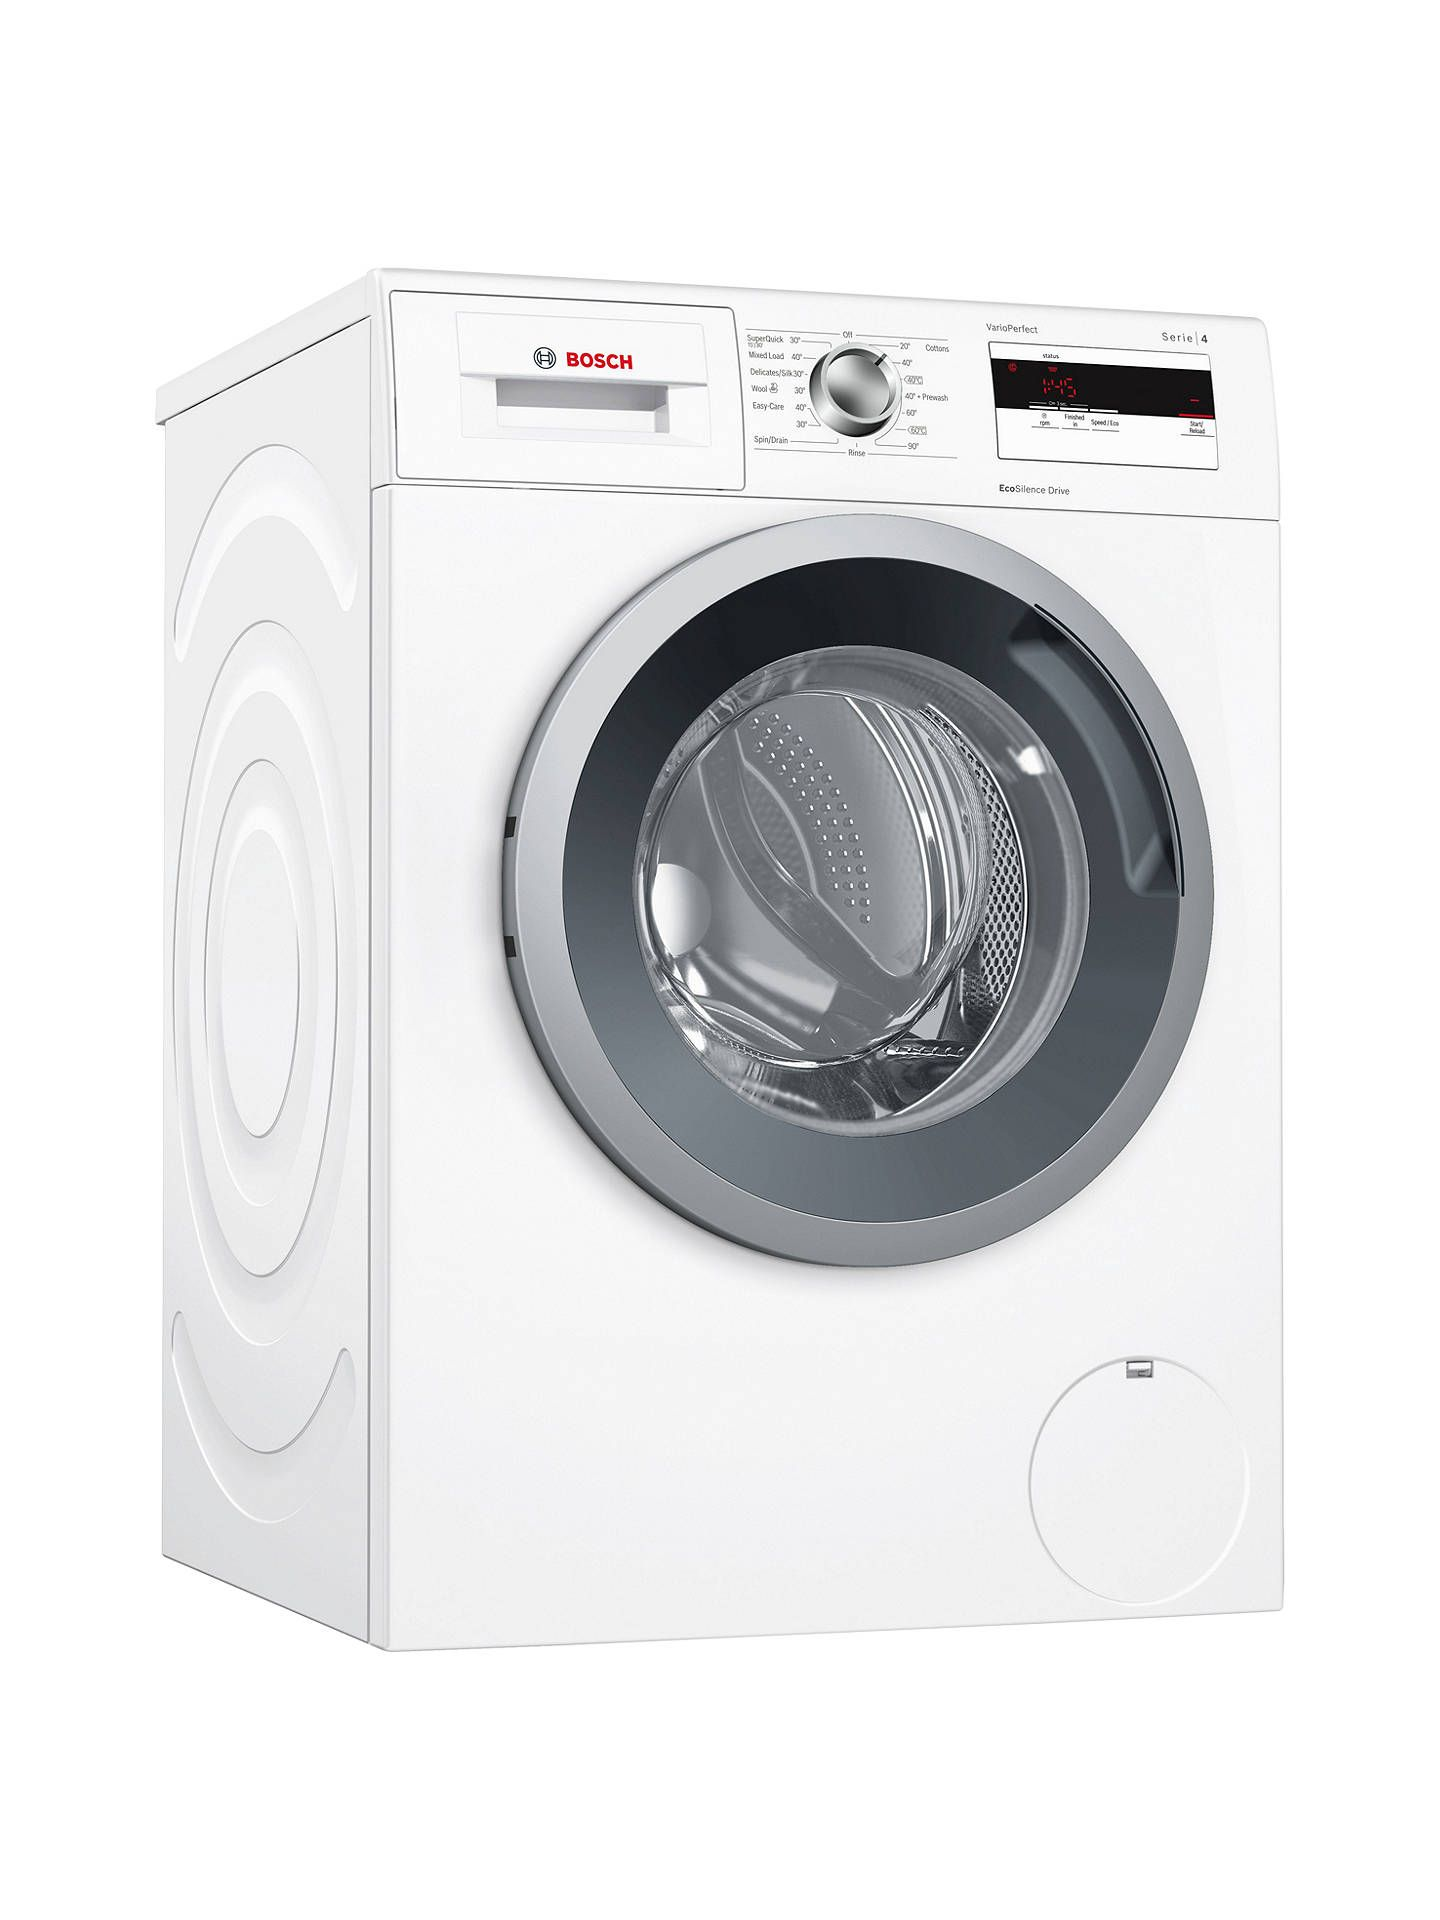 Image Result For Bosch Laundry Machine Bosch Washing Machine Washing Machine Bosch